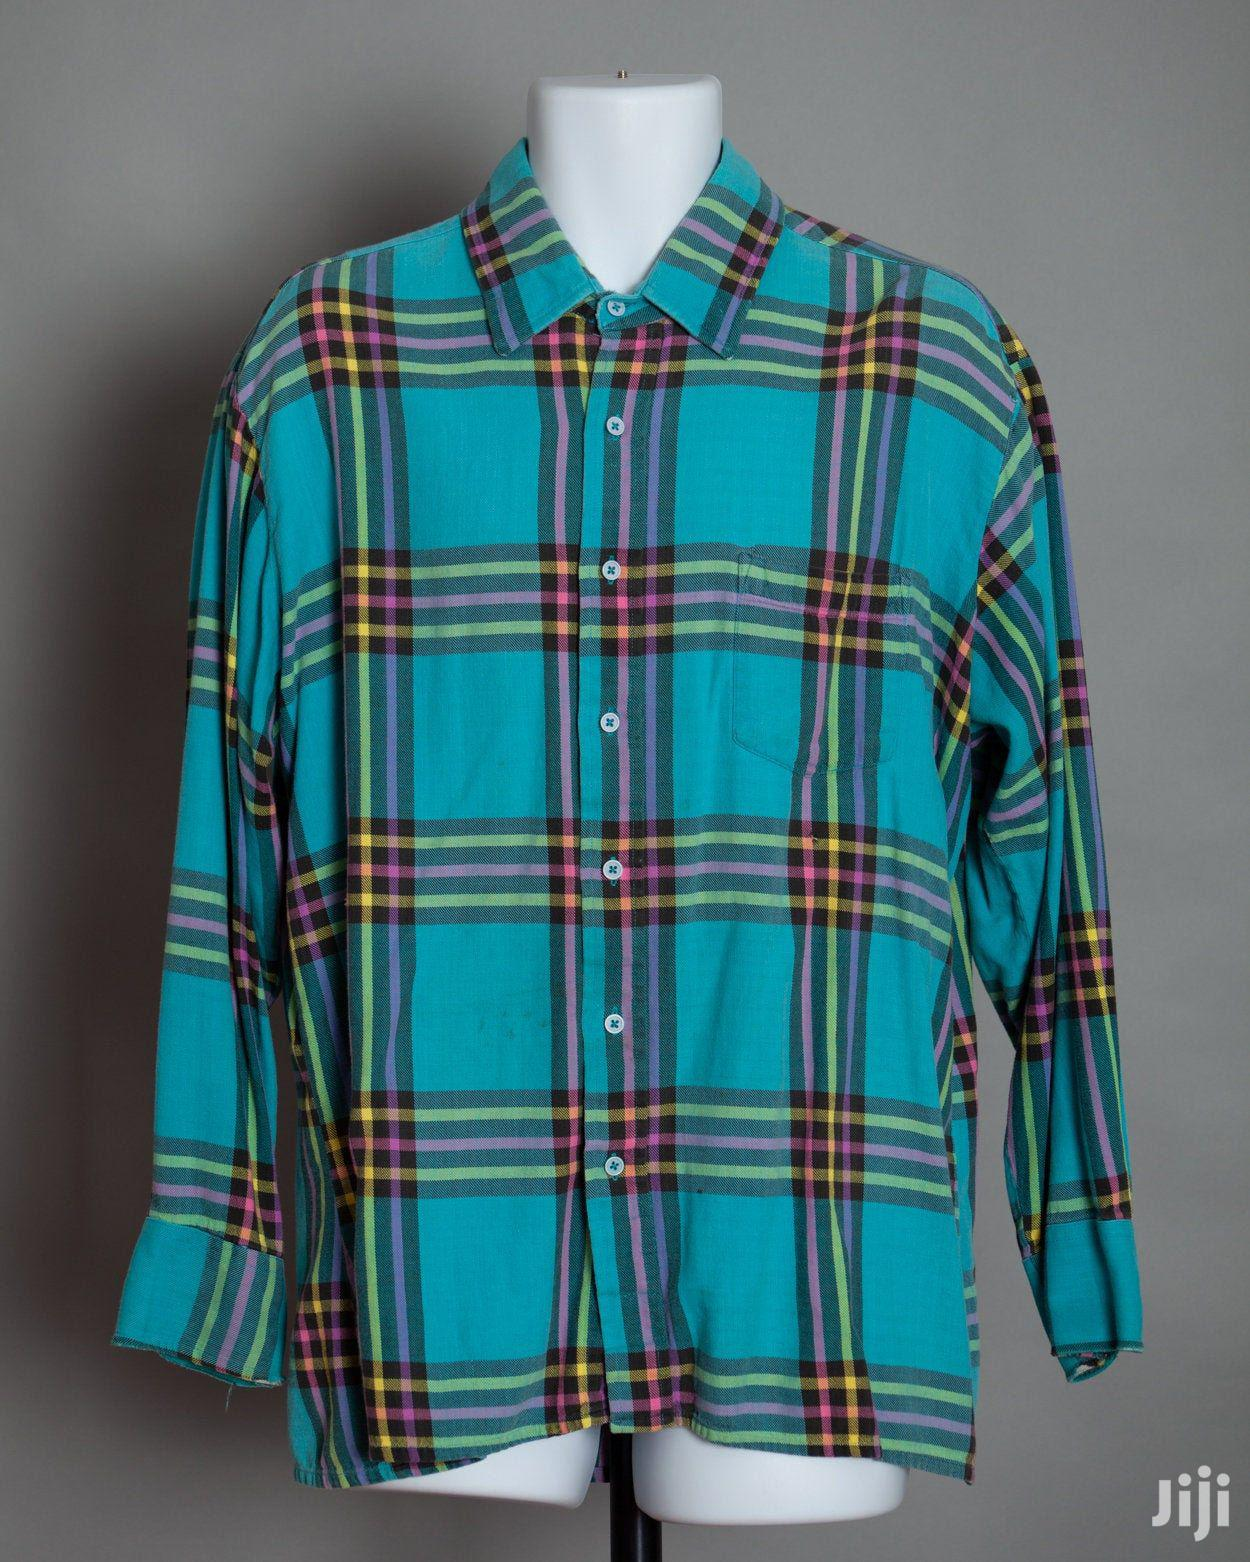 High Quality Second Hand Men's Shirts for Sale   Clothing for sale in Accra Metropolitan, Greater Accra, Ghana